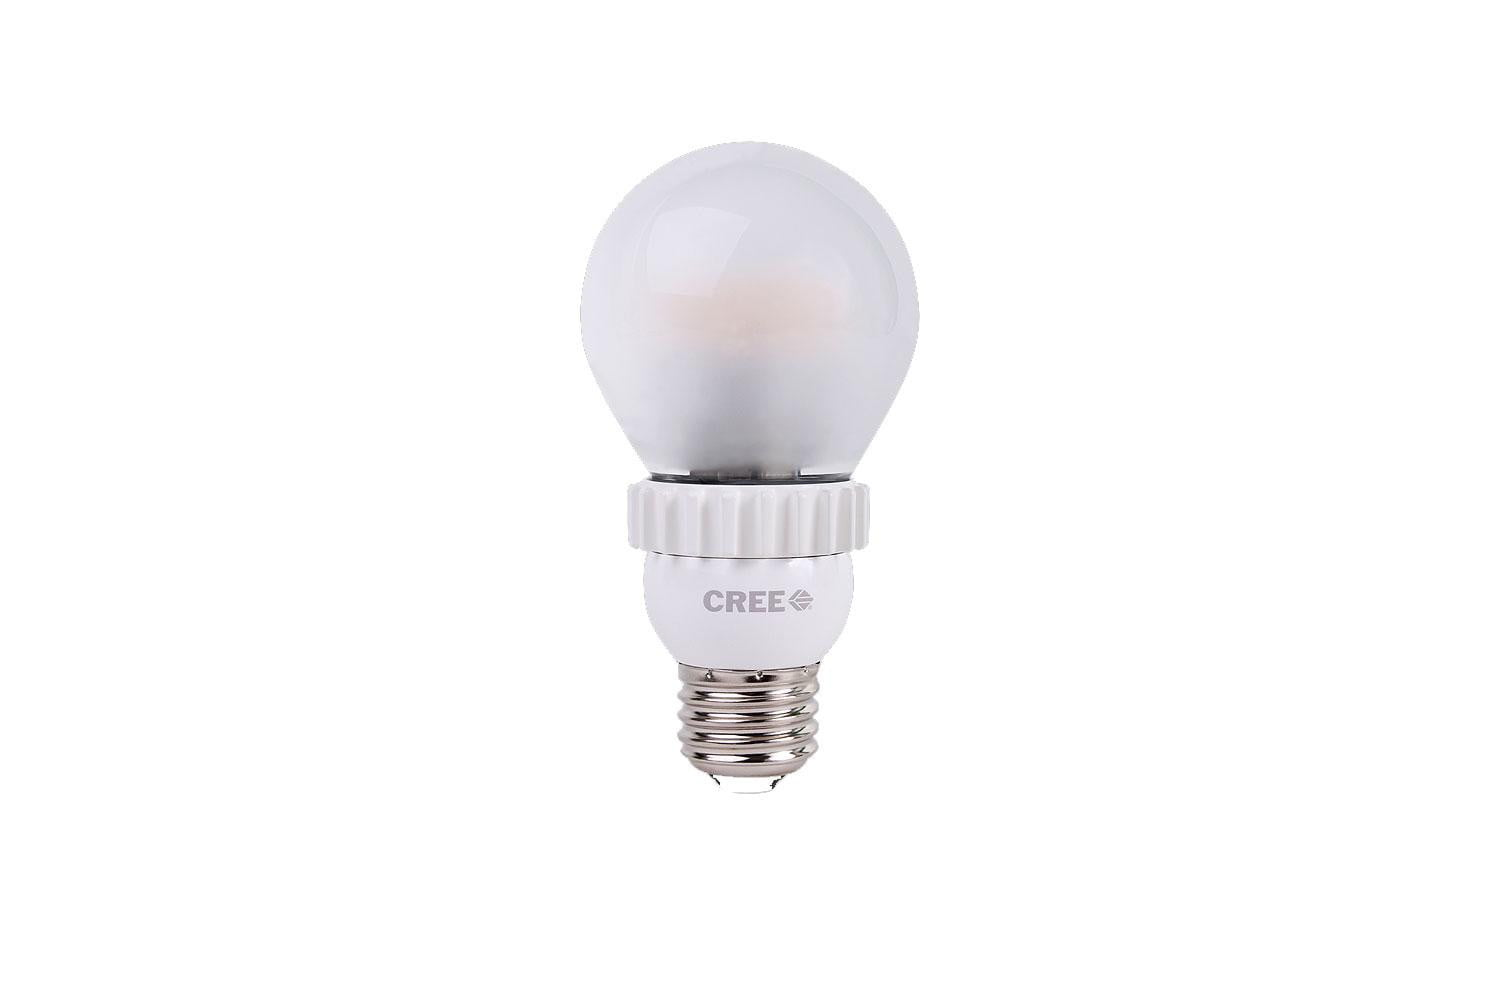 Cree Brings A Novel Idea To Led Light Bulbs By Making Them Look Like Light Bulbs Digital Trends